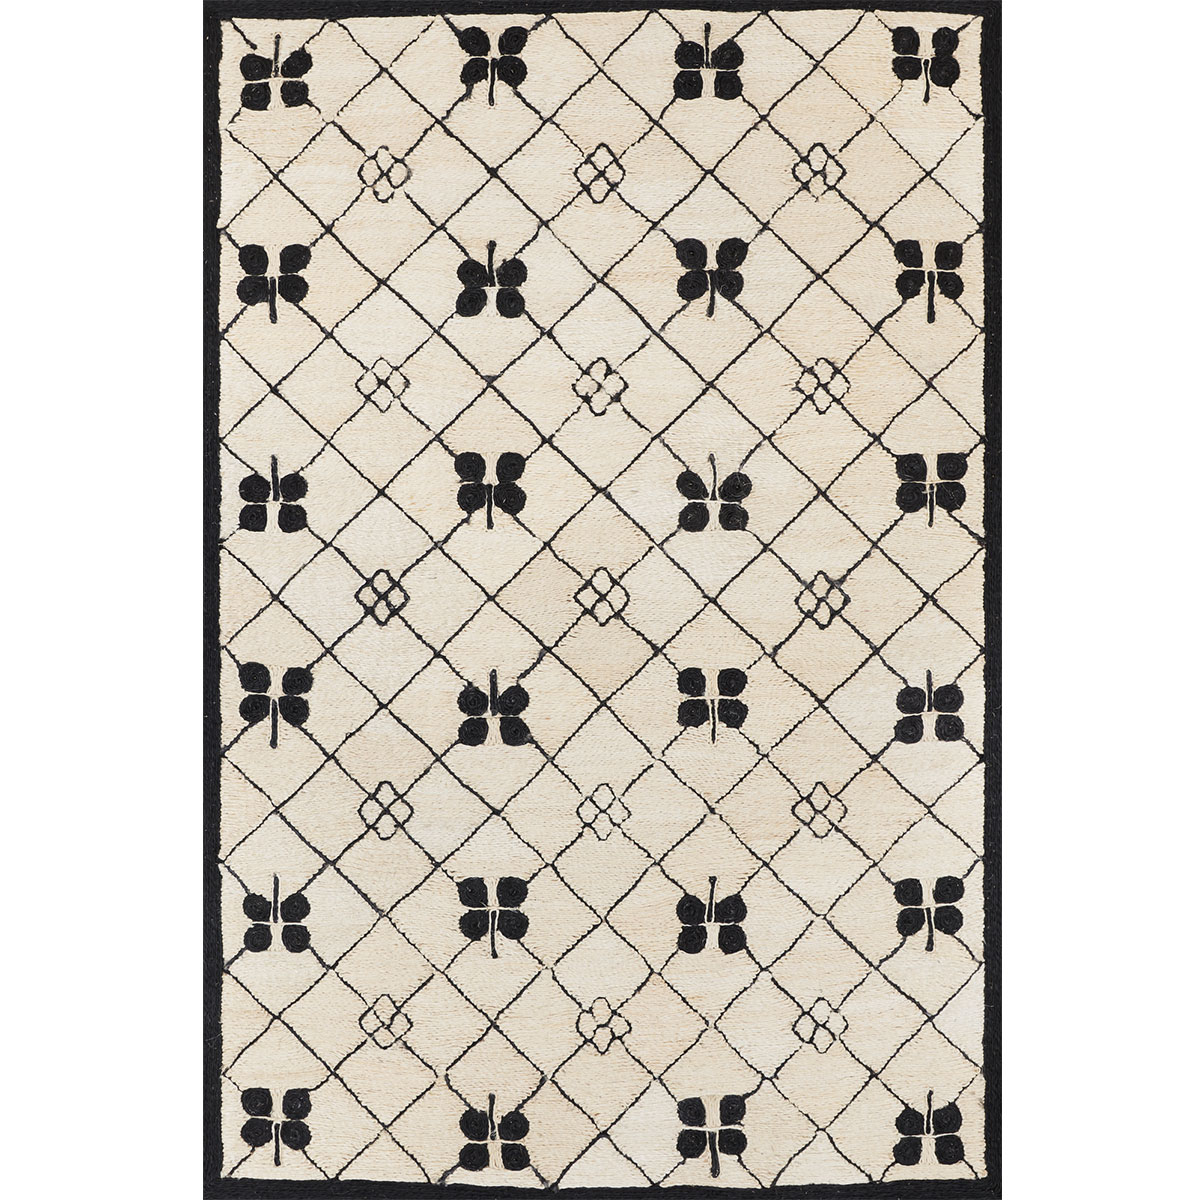 luck-be-a-lady_abaca_hand-woven_patterson-flynn-martin_pfm